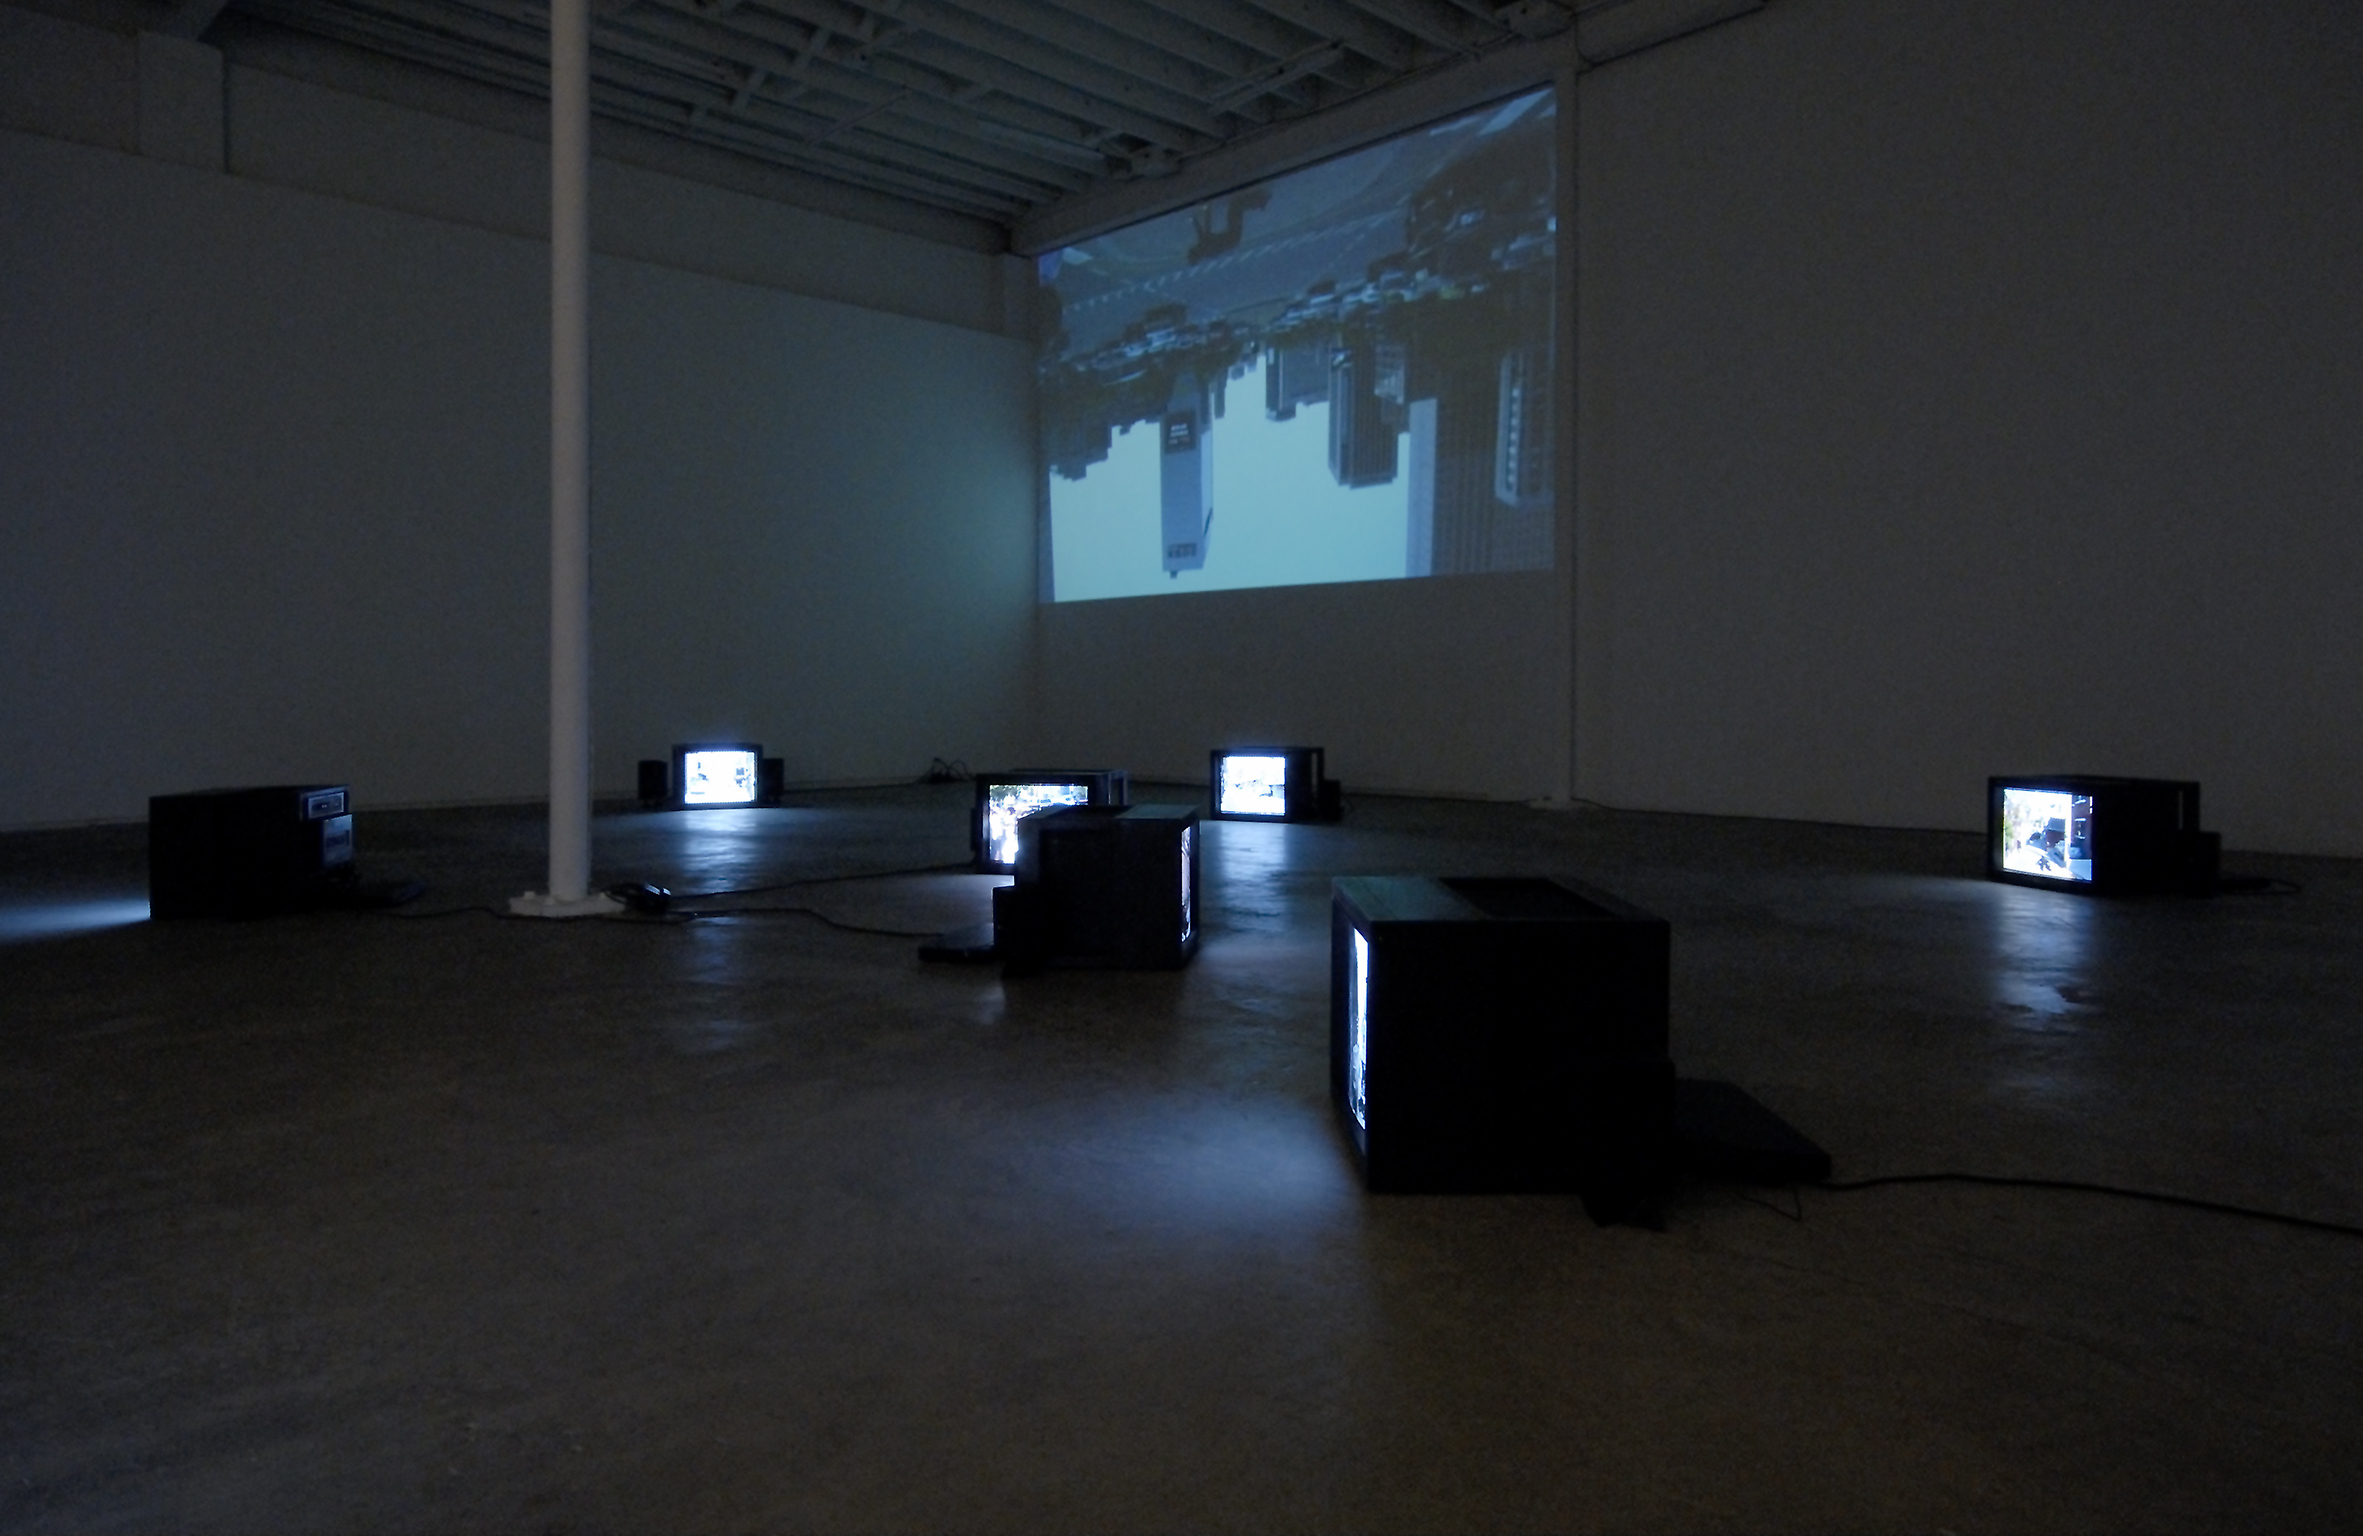 Jin-me Yoon, As It Is Becoming (Seoul, Korea), 2008, 12 HD single channel videos, video projection and 11 monitors, 9 minutes, 2 seconds by